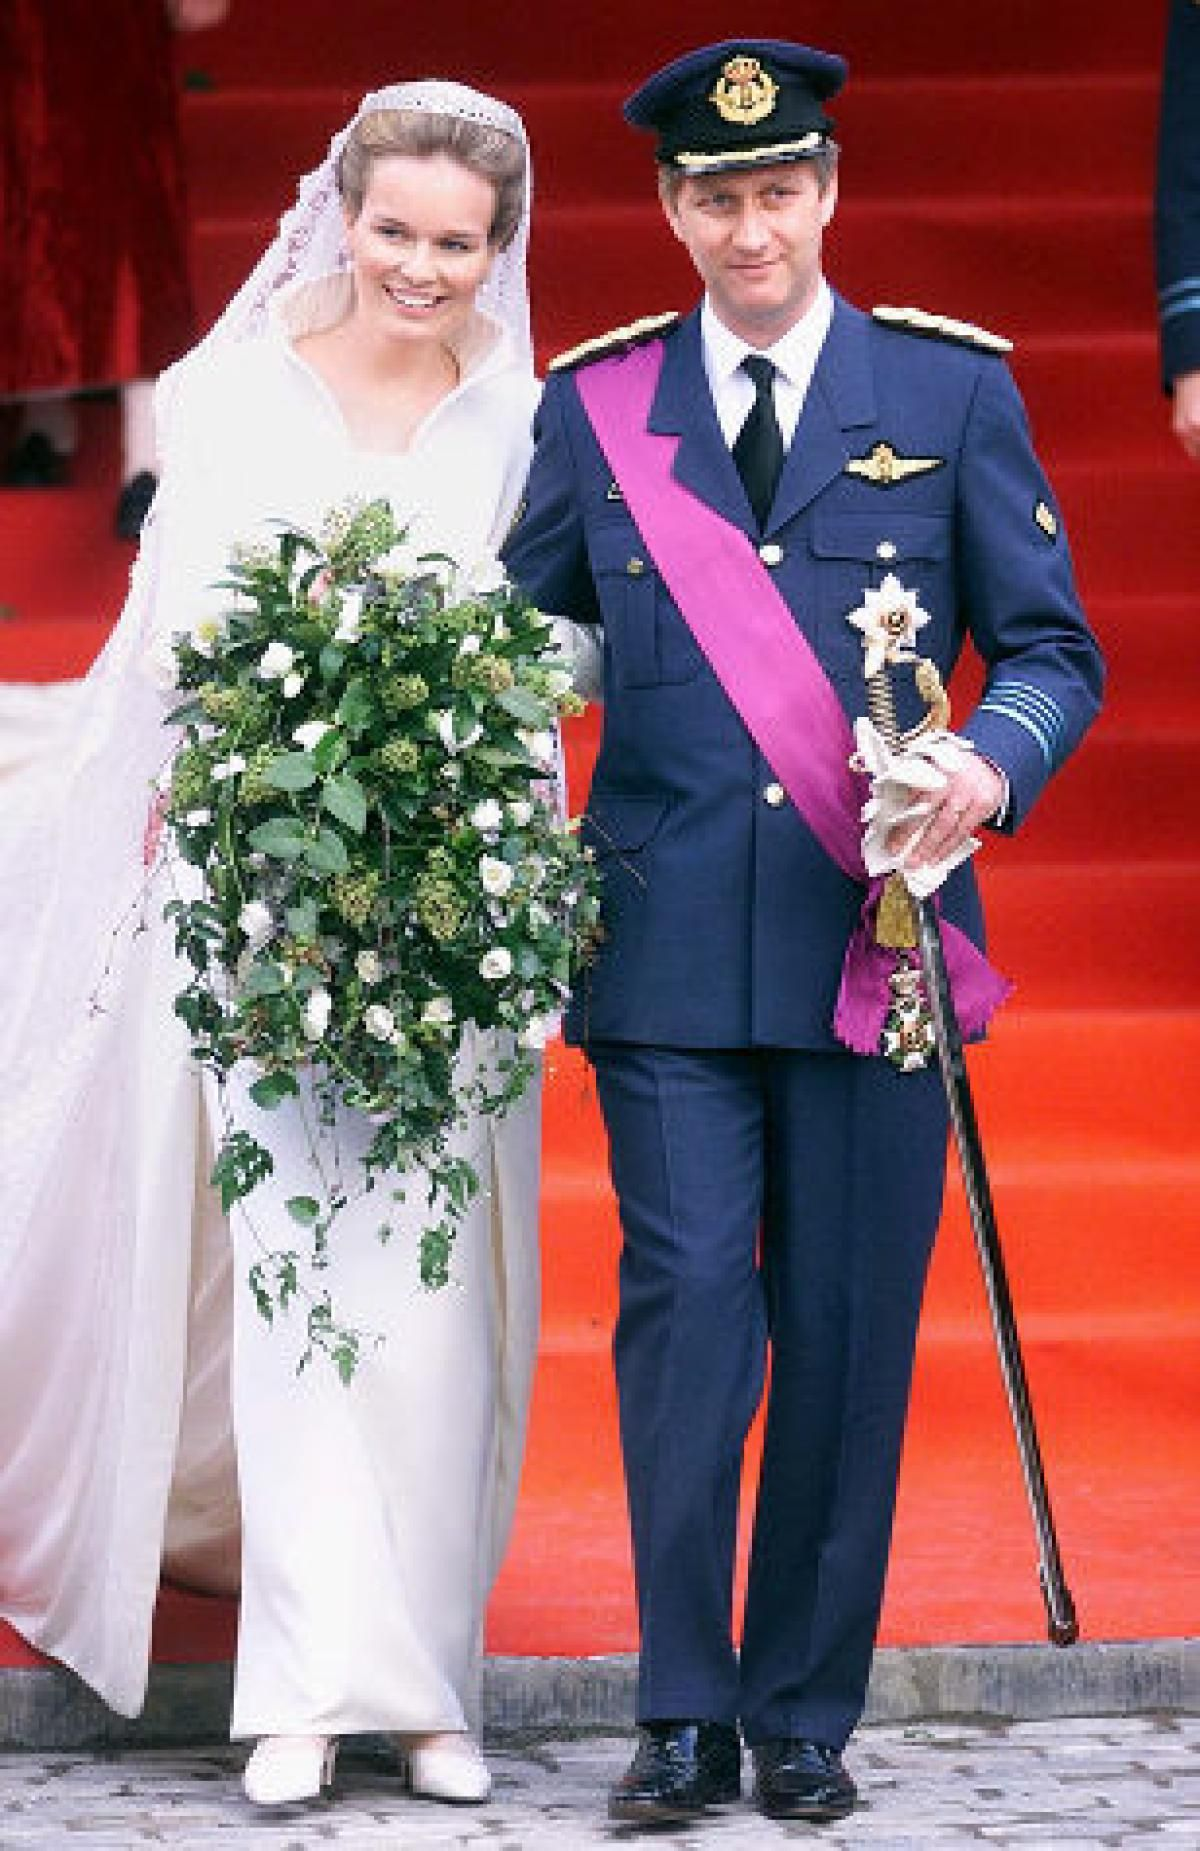 Royal Weddings From Around The World Slide 10 Royal Brides Royal Wedding Gowns Royal Weddings [ 1851 x 1200 Pixel ]